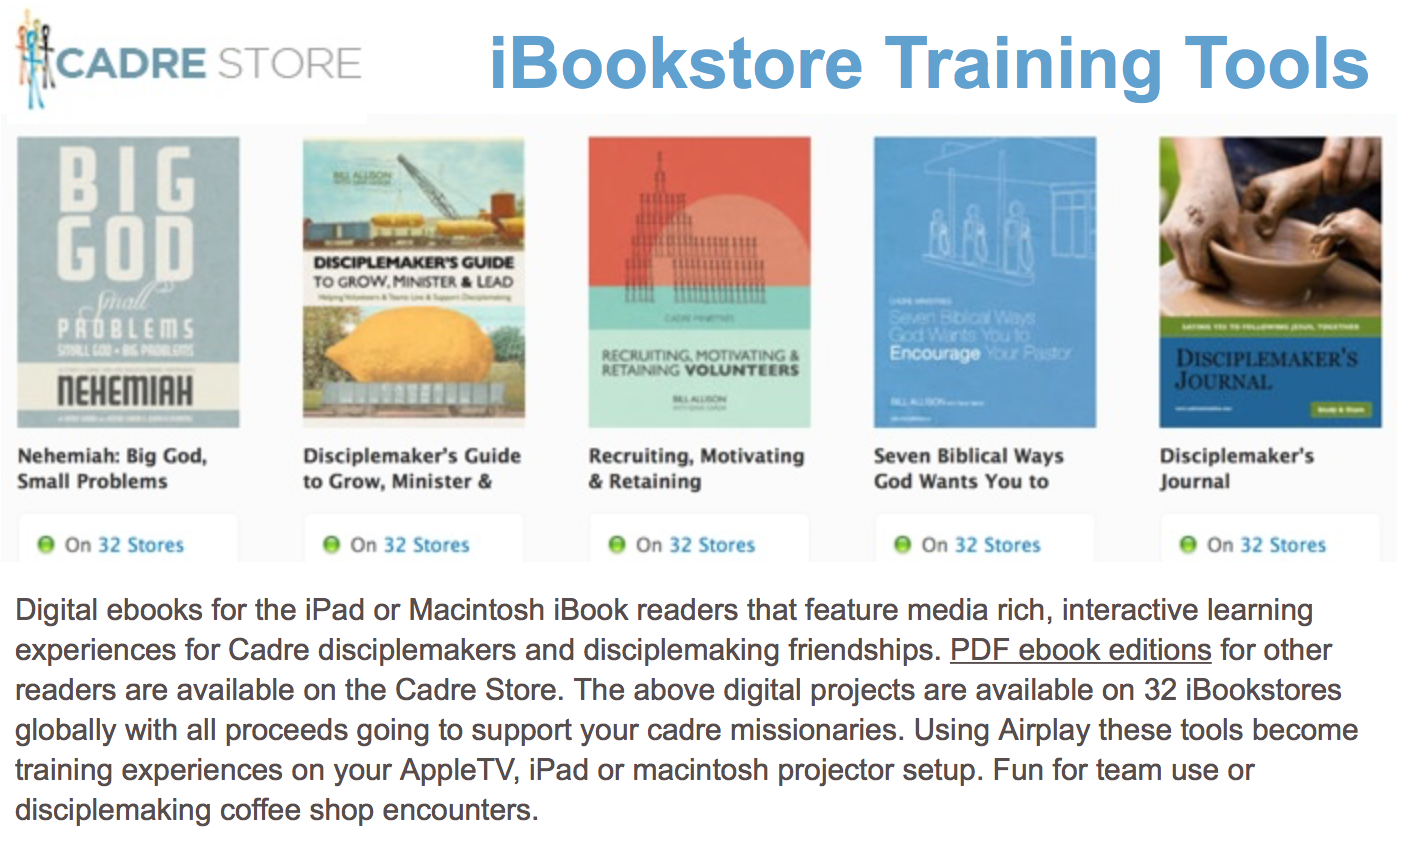 Cadre's iBookstore Expanded Digital Tools